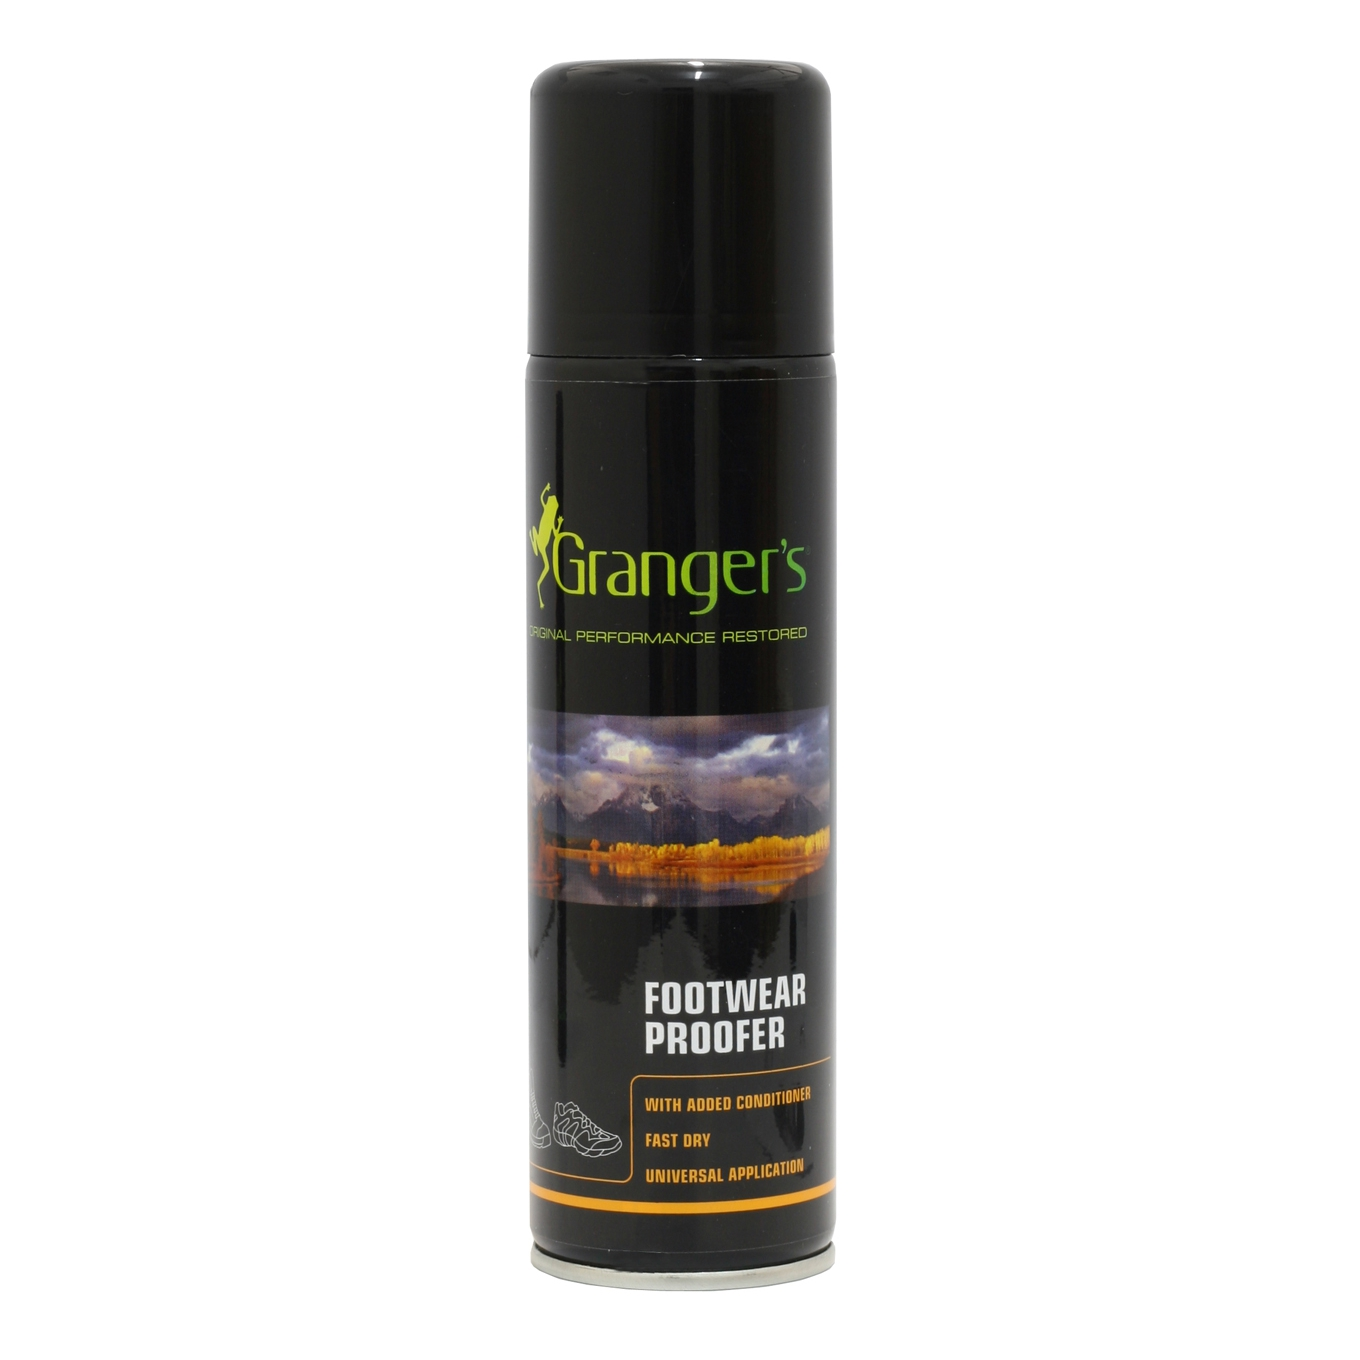 Grangers Footwear Proofer & Conditioner - 250 ml